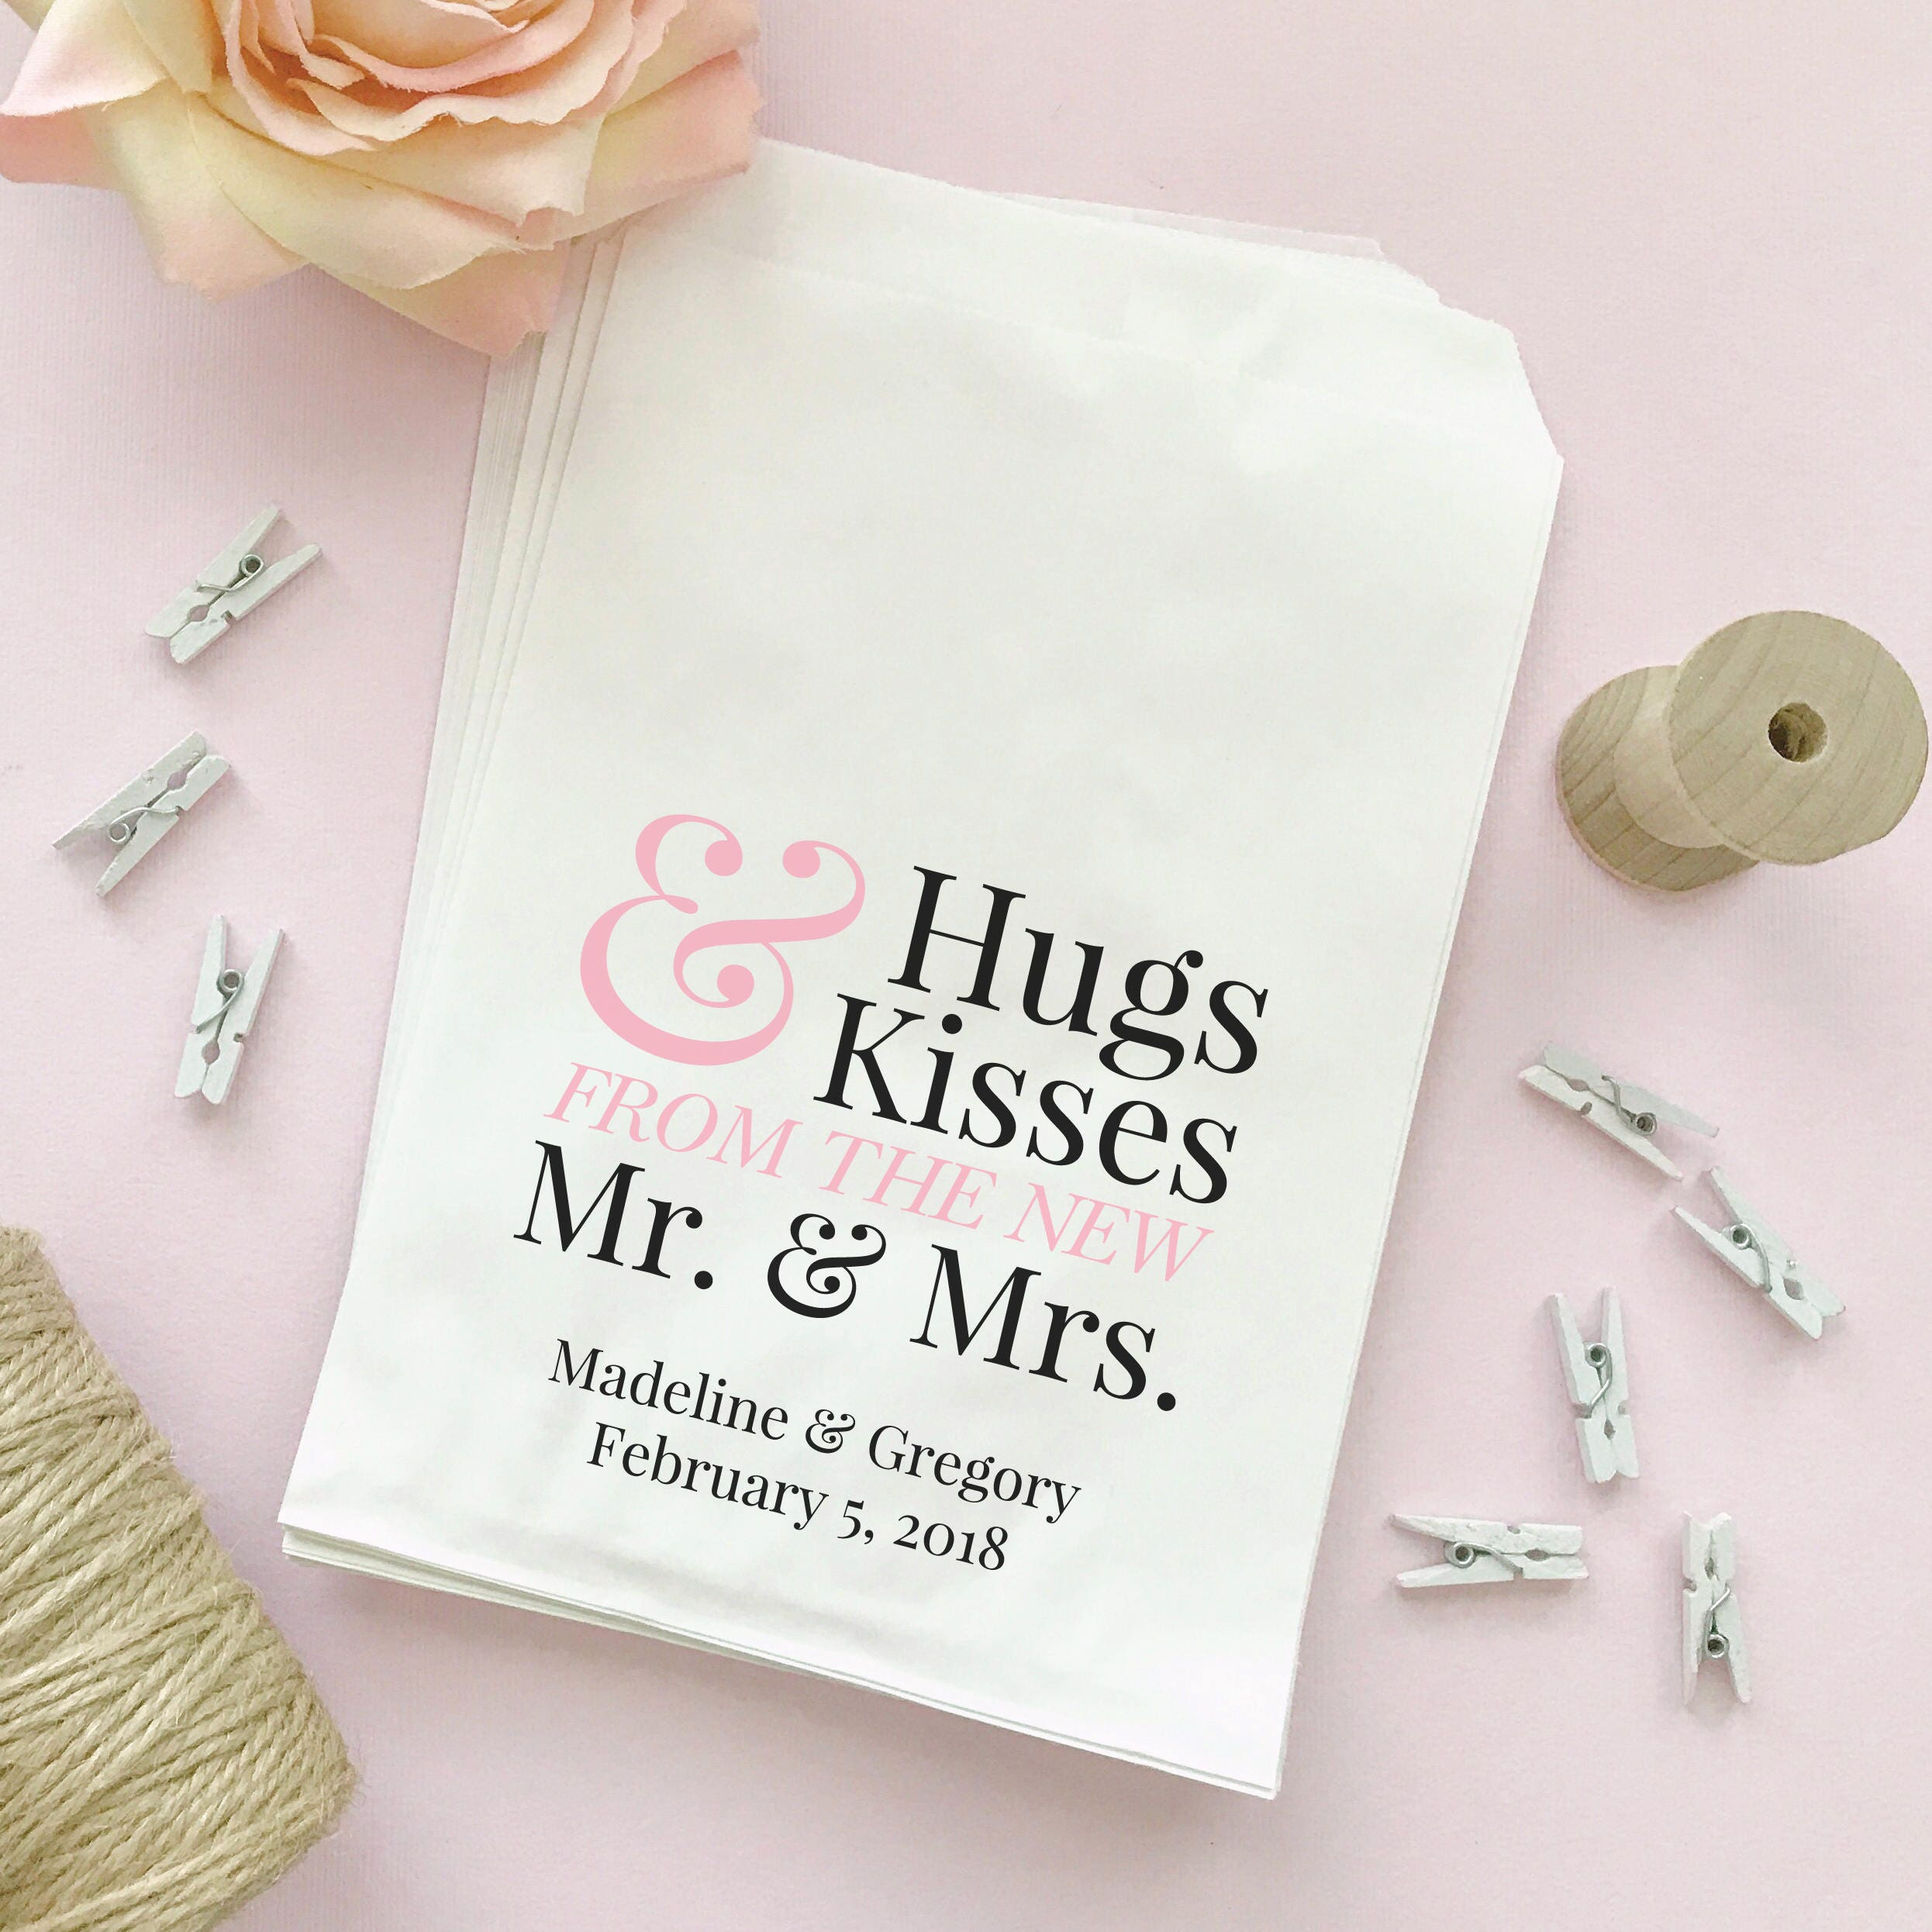 Hugs and kisses bags 30 Hugs and kisses from the mr and